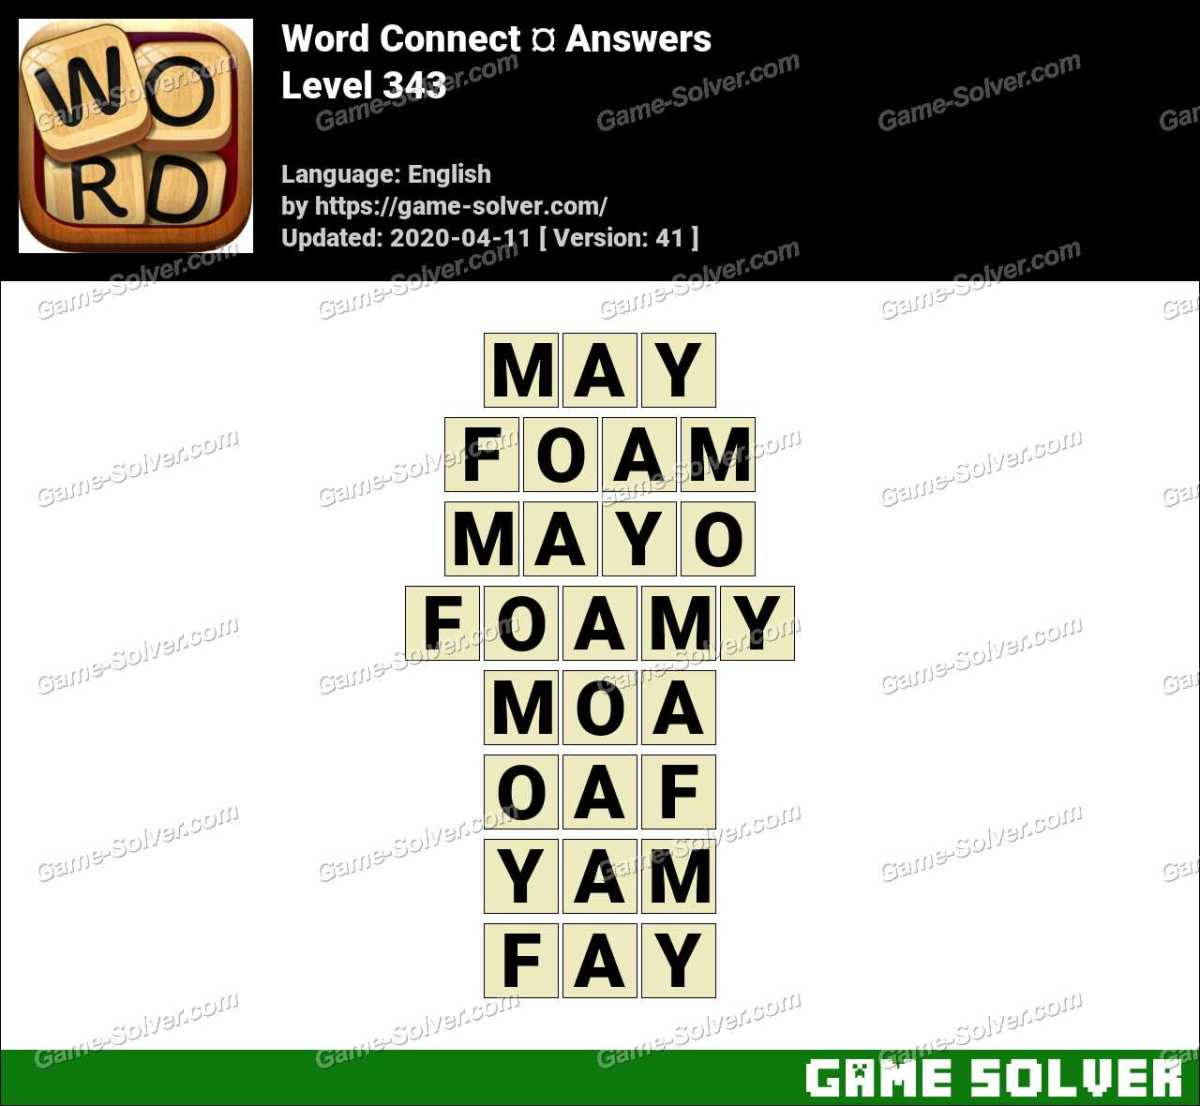 Word Connect Level 343 Answers